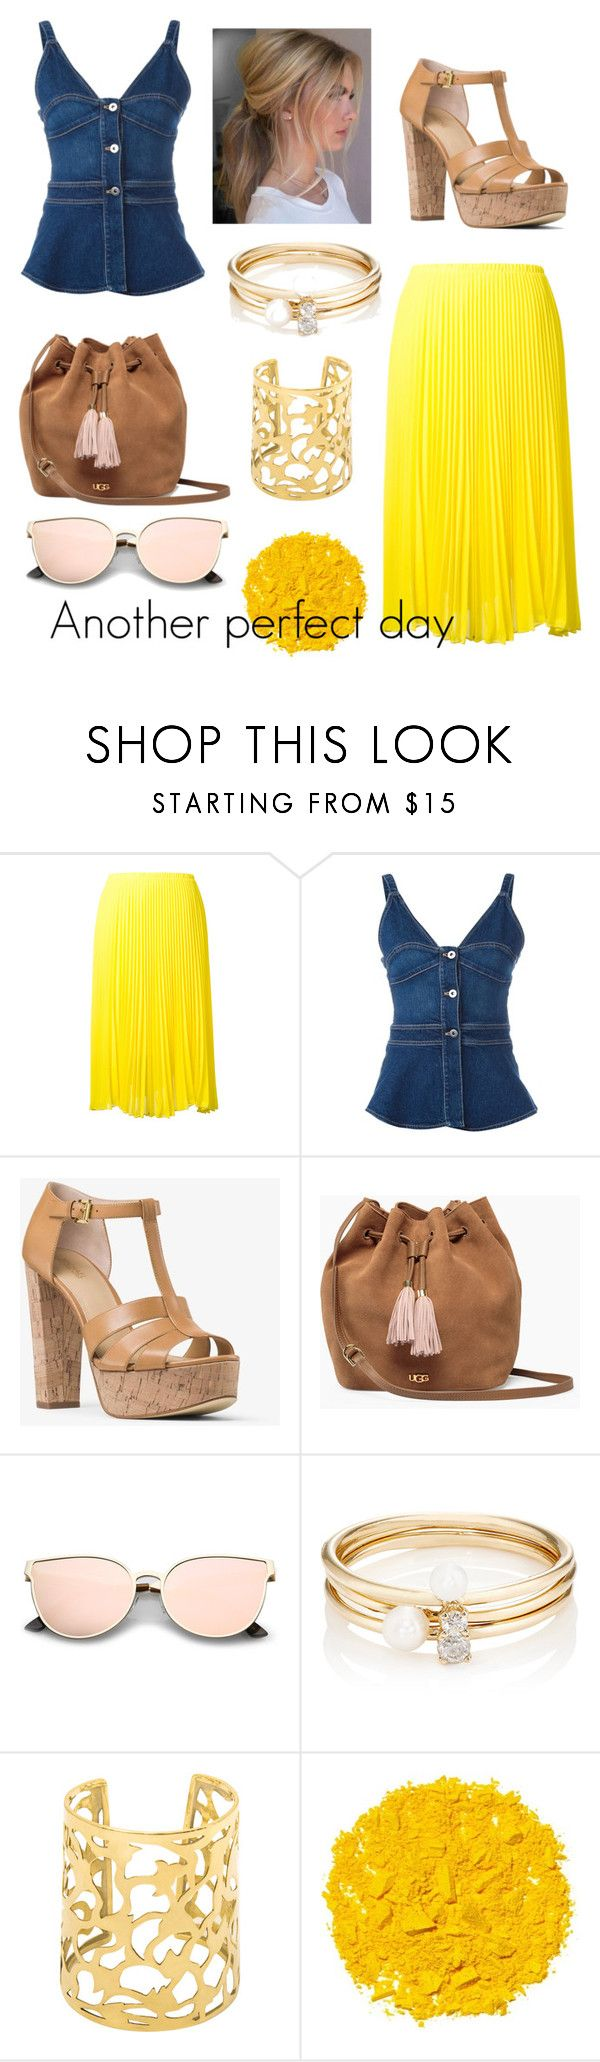 """""""Another perfect day"""" by fashiondesignpassion ❤ liked on Polyvore featuring Loyd/Ford, STELLA McCARTNEY, MICHAEL Michael Kors, UGG, Loren Stewart and Illamasqua"""